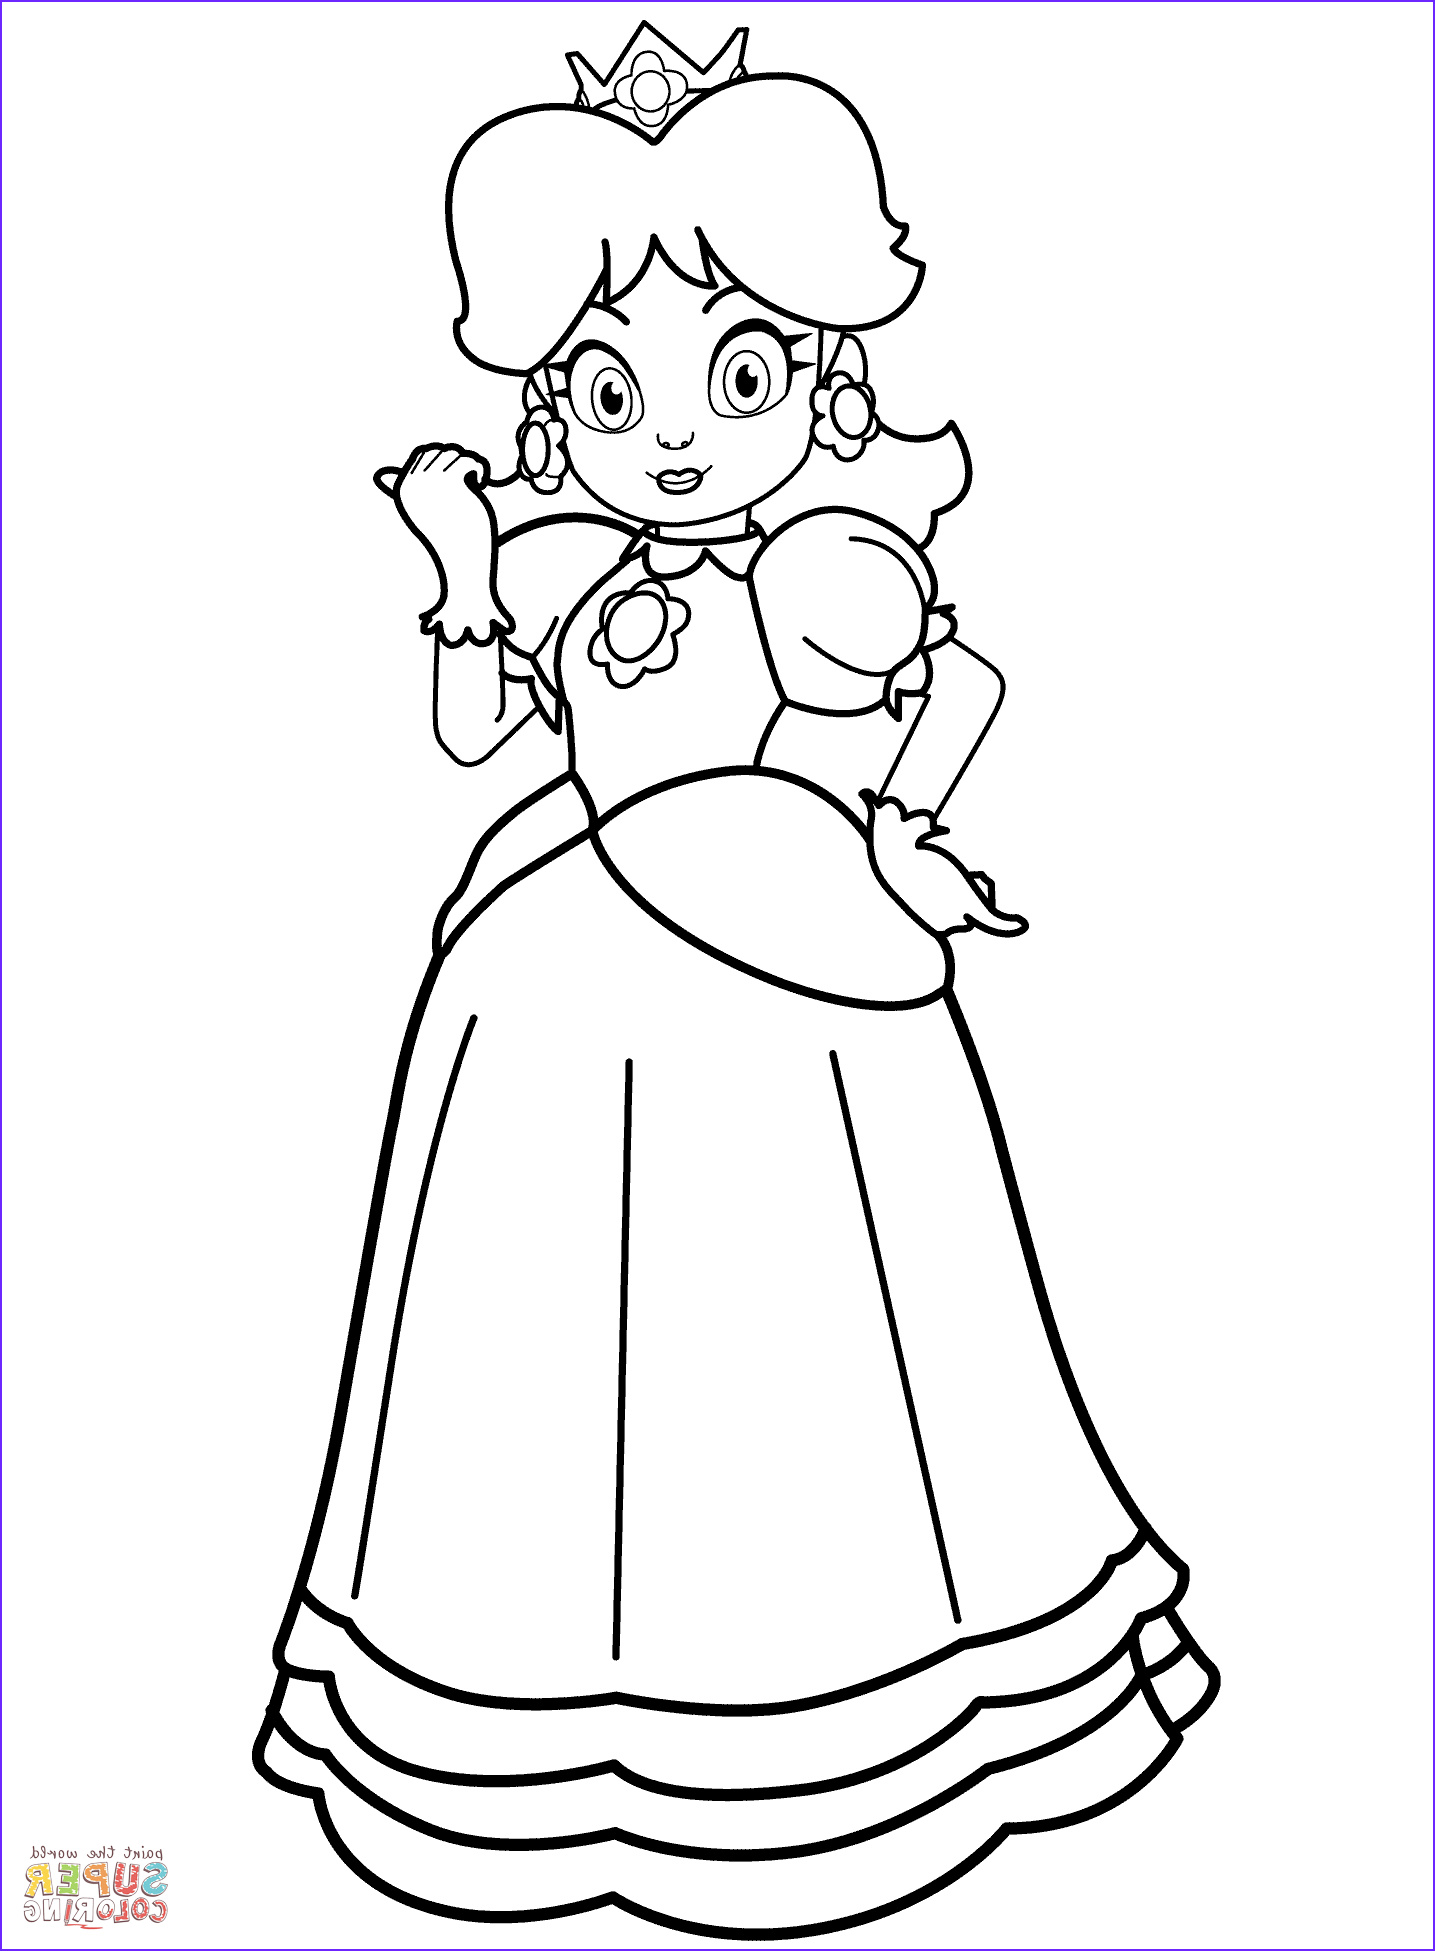 Princess Daisy Coloring Page New Gallery Princess Daisy Coloring Page